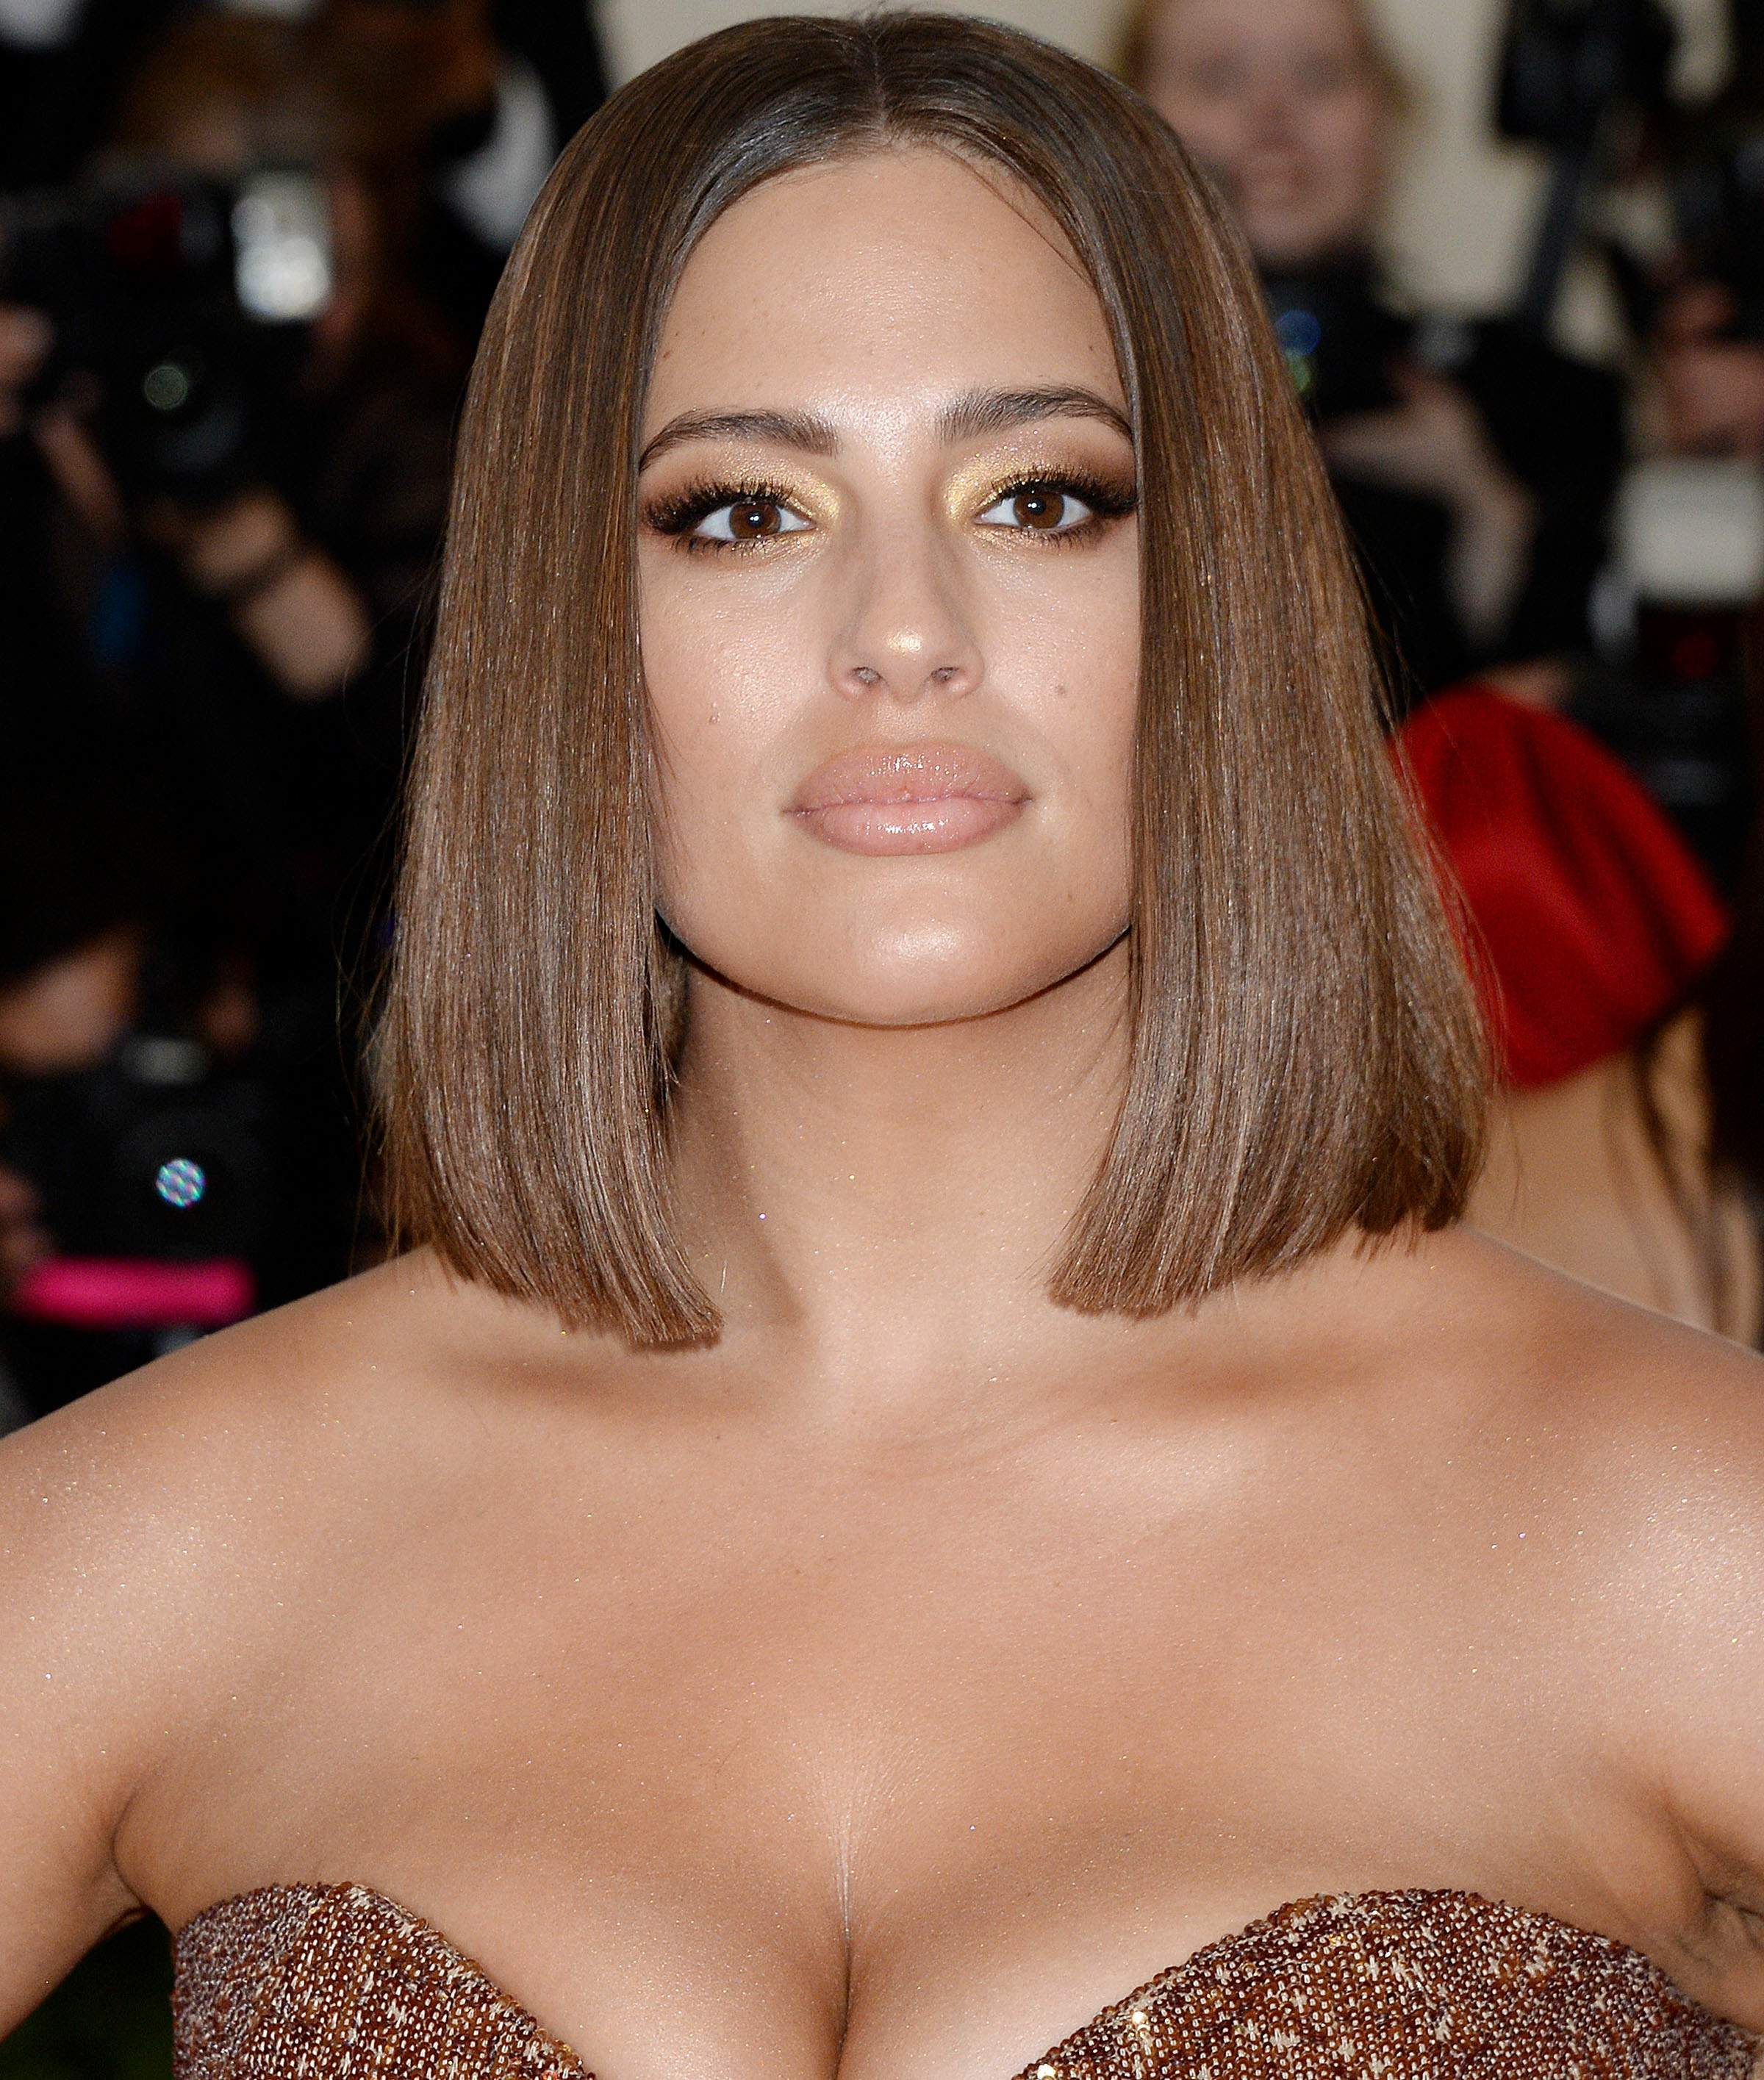 70004105_ashley-graham-026.jpg